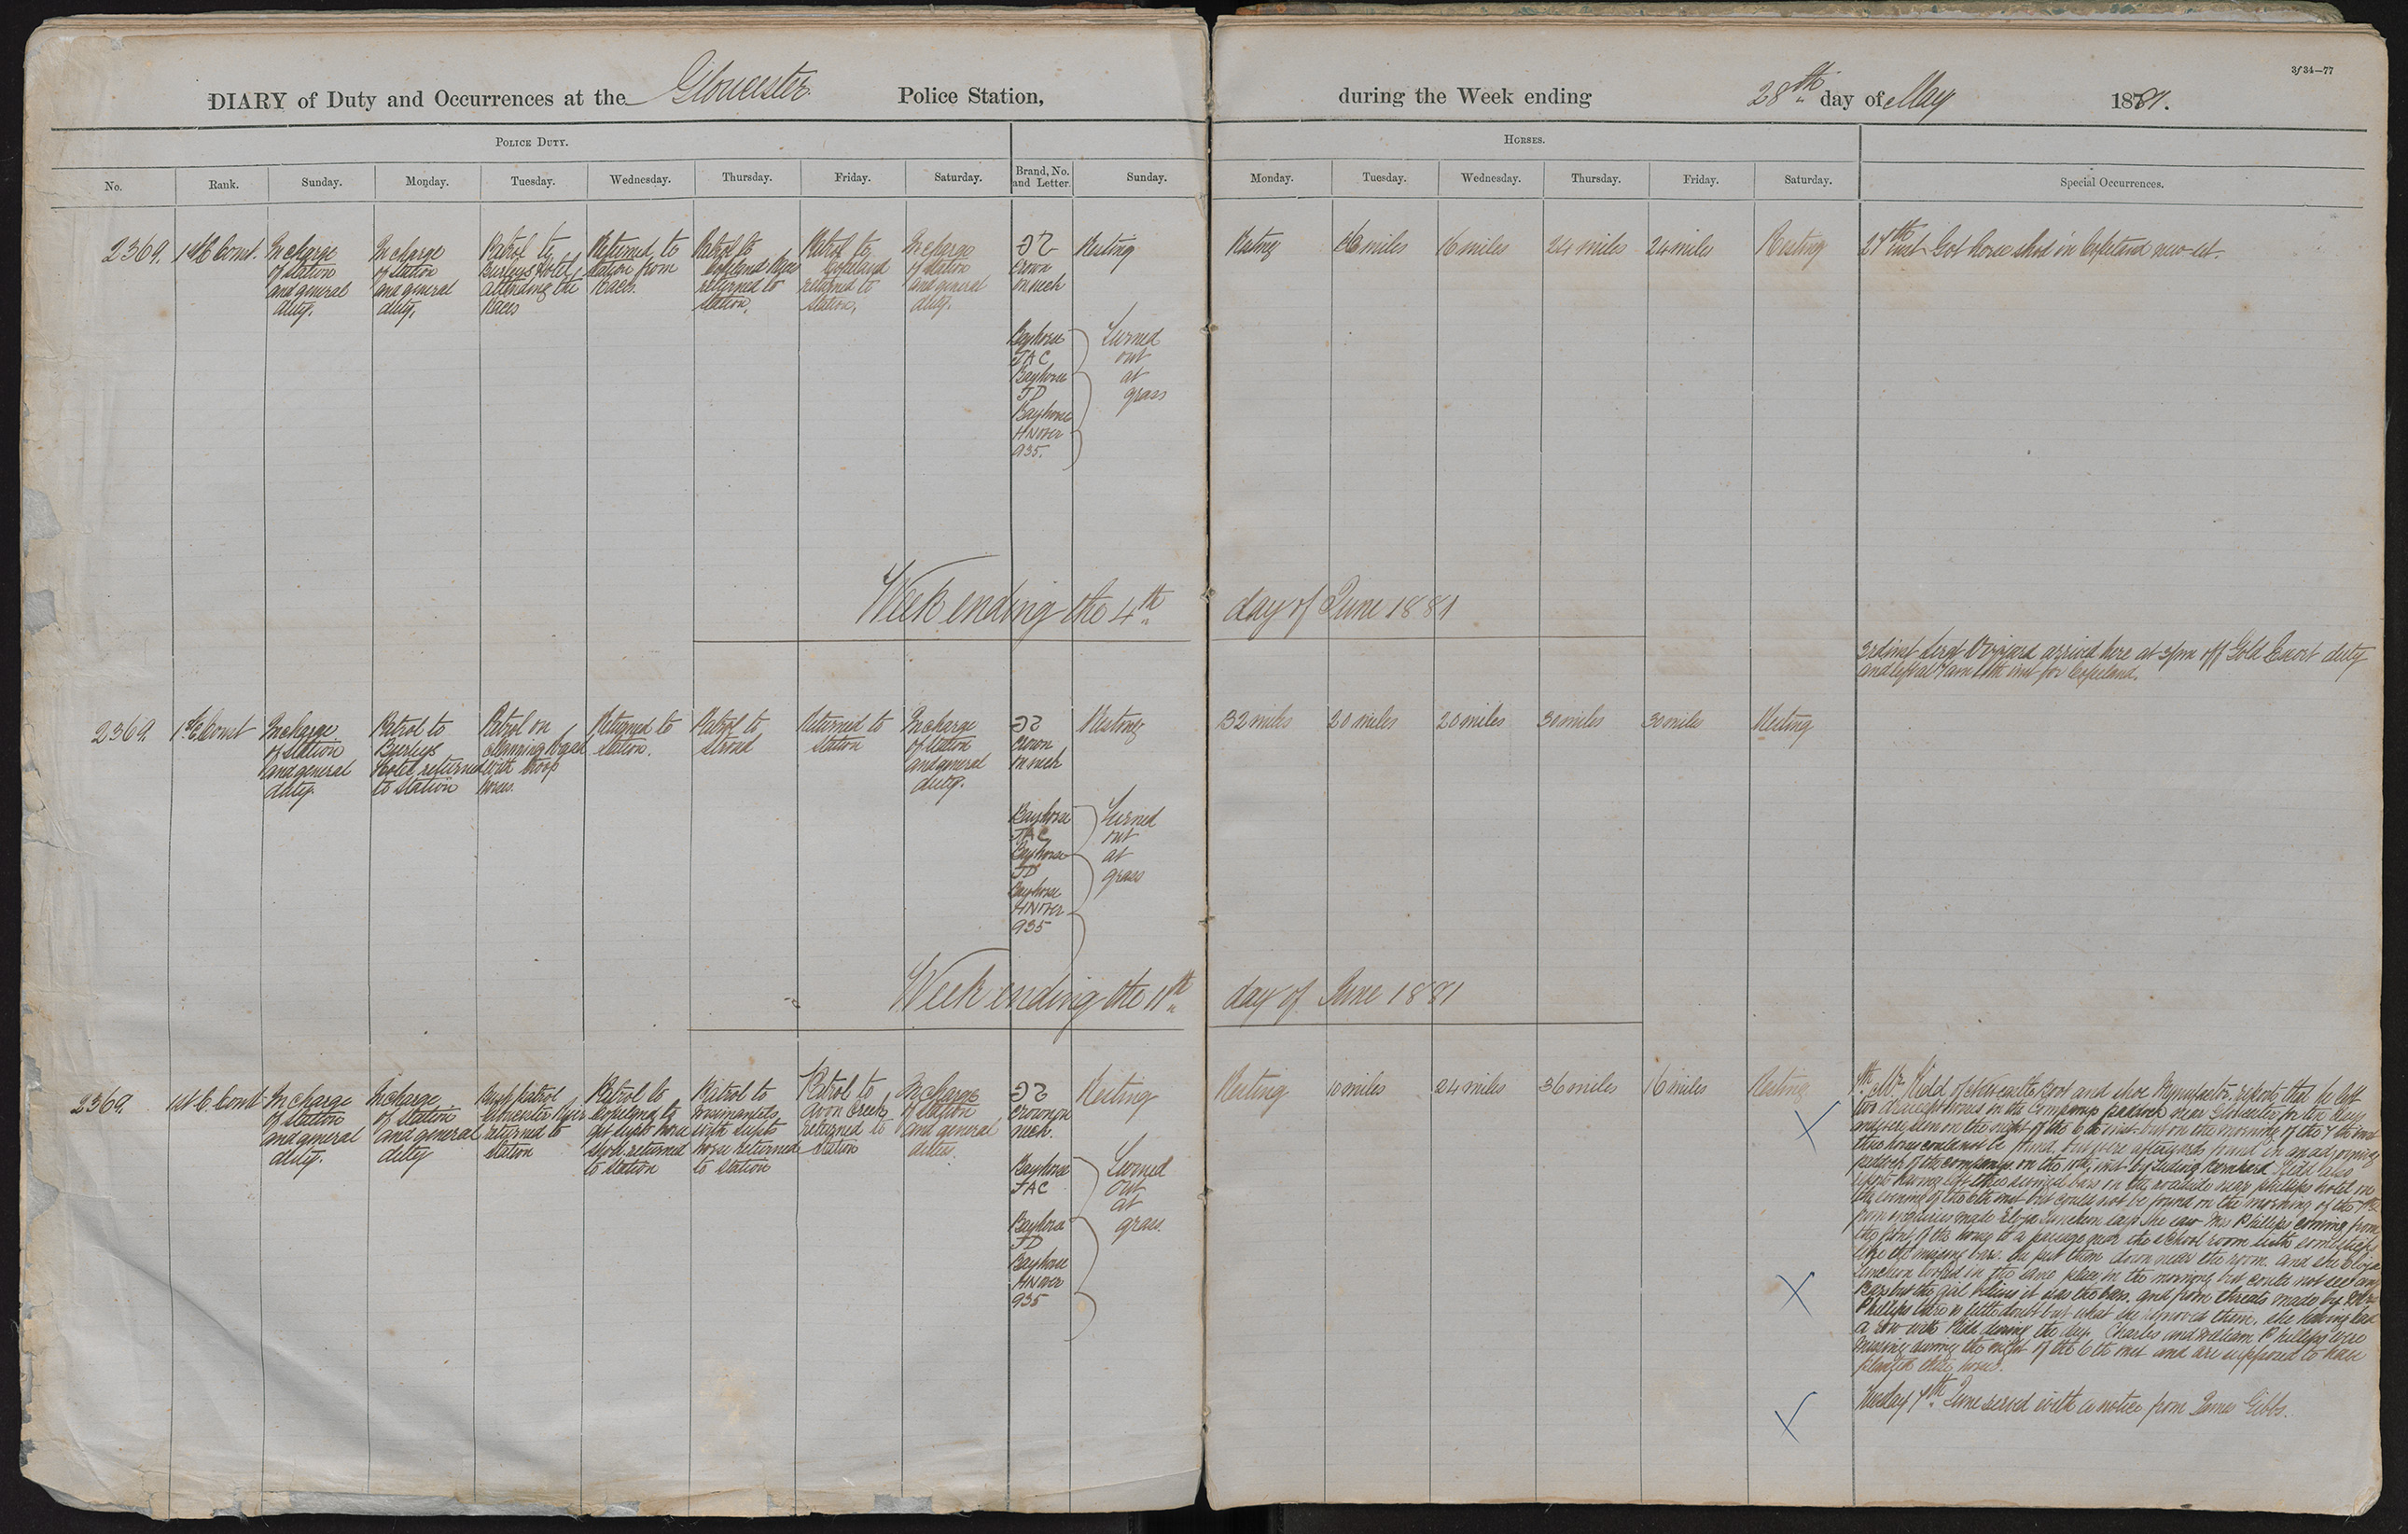 Diary of duty and occurrences at the Gloucester Police Station during the week ending the 28th day of May 1881